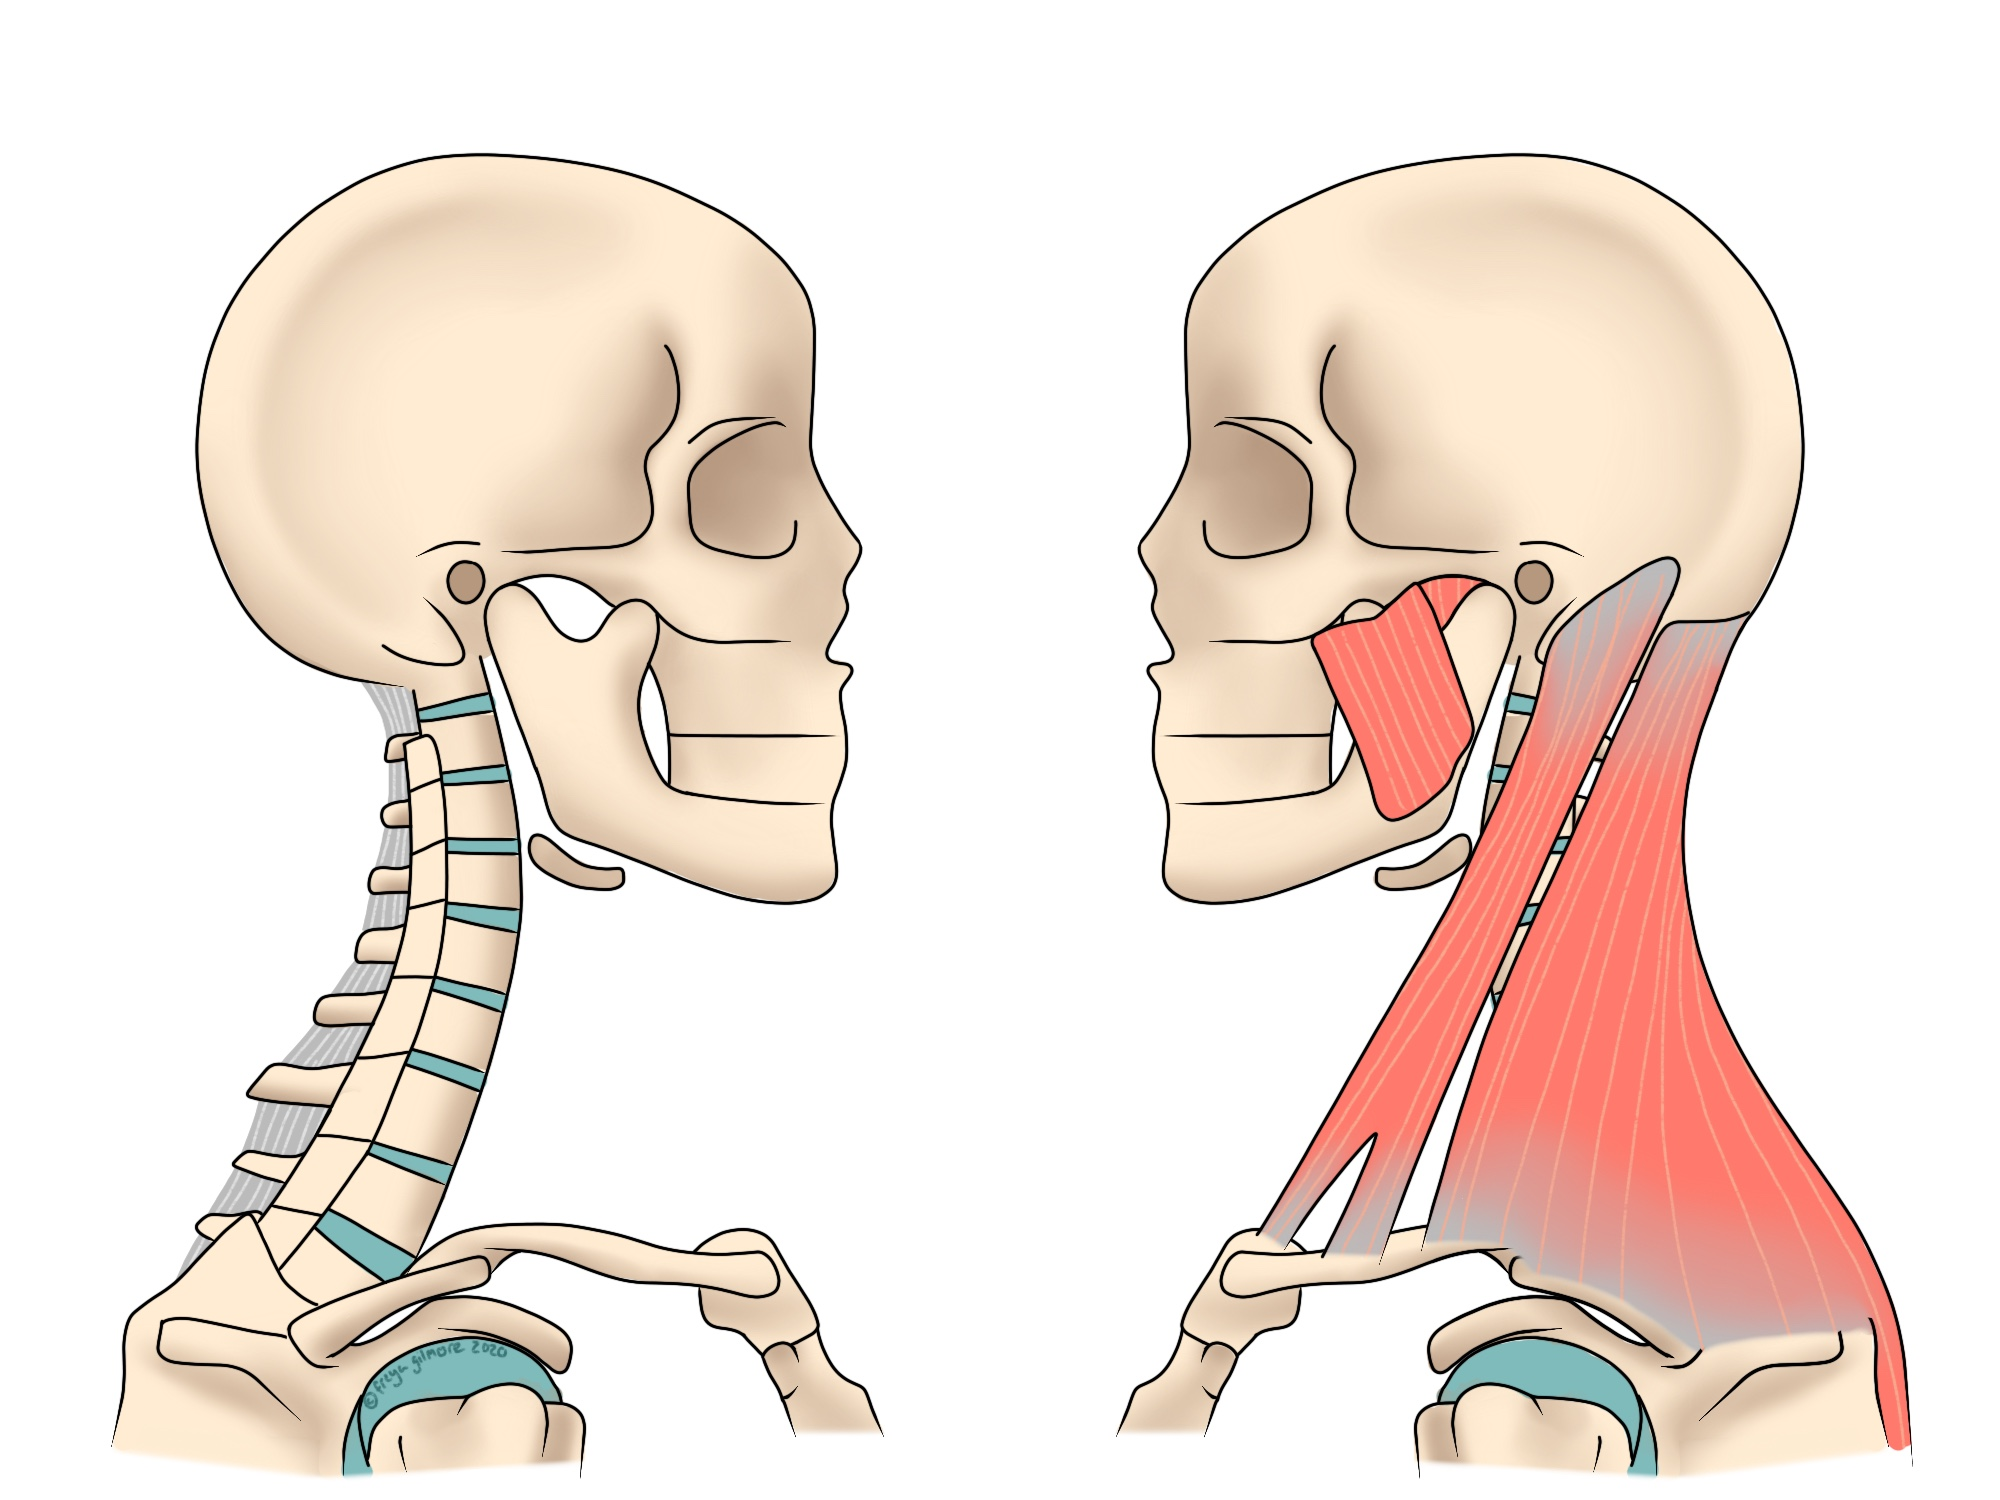 Anatomy of the head and neck with potentially causes of neck pain